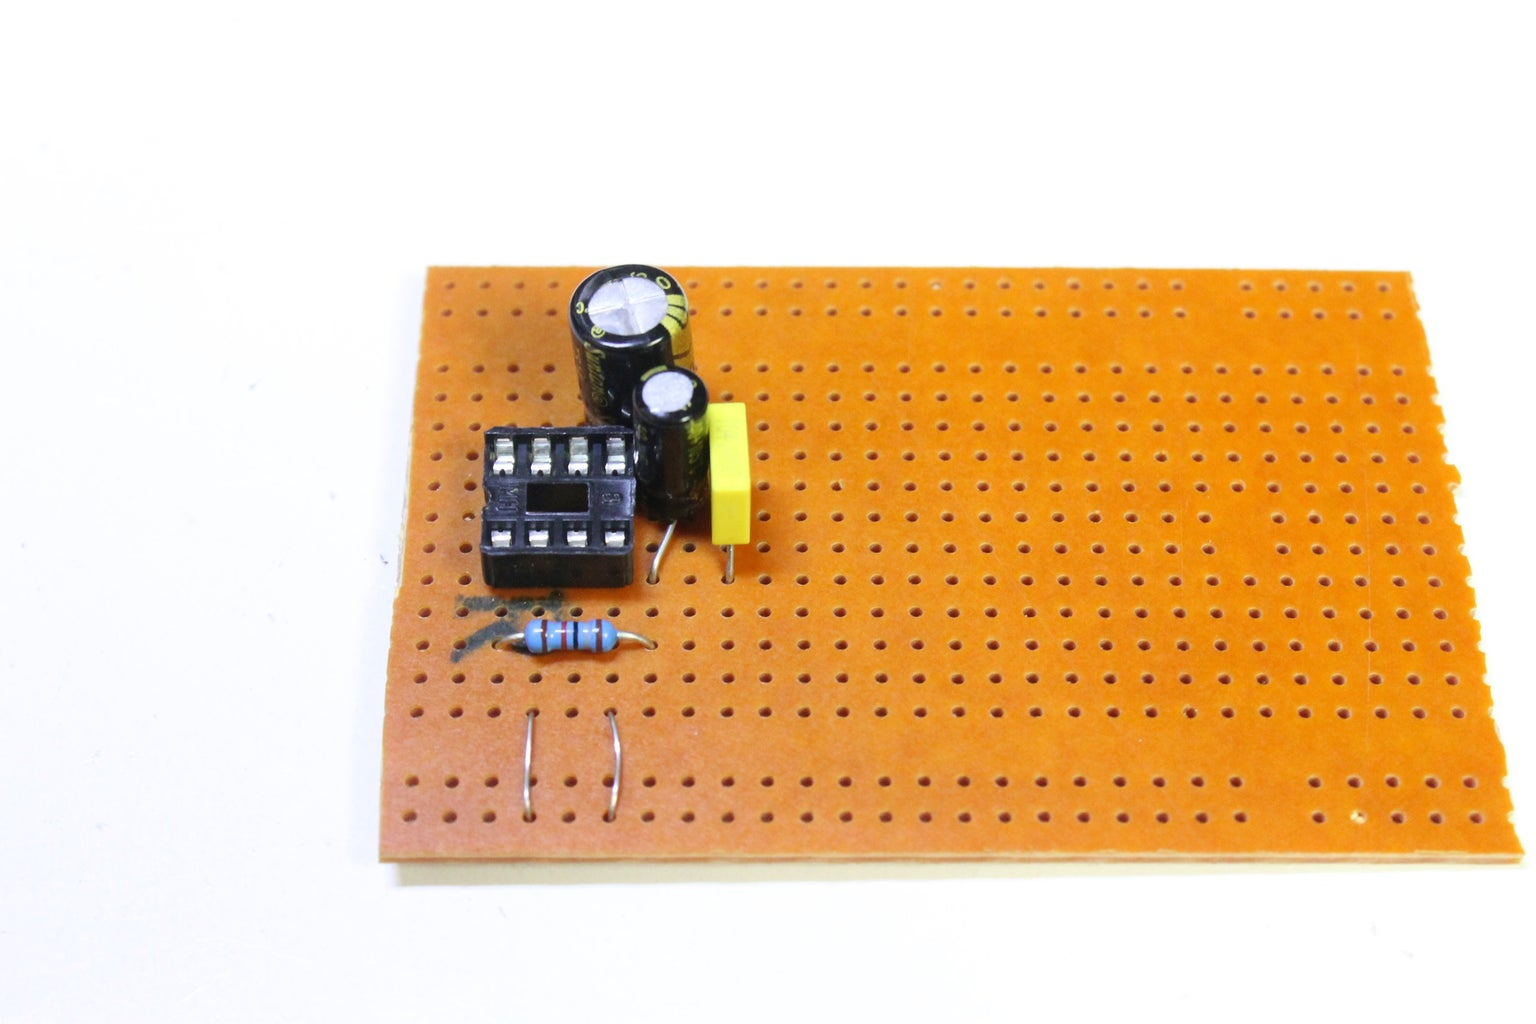 Making the Circuit - Pins 5